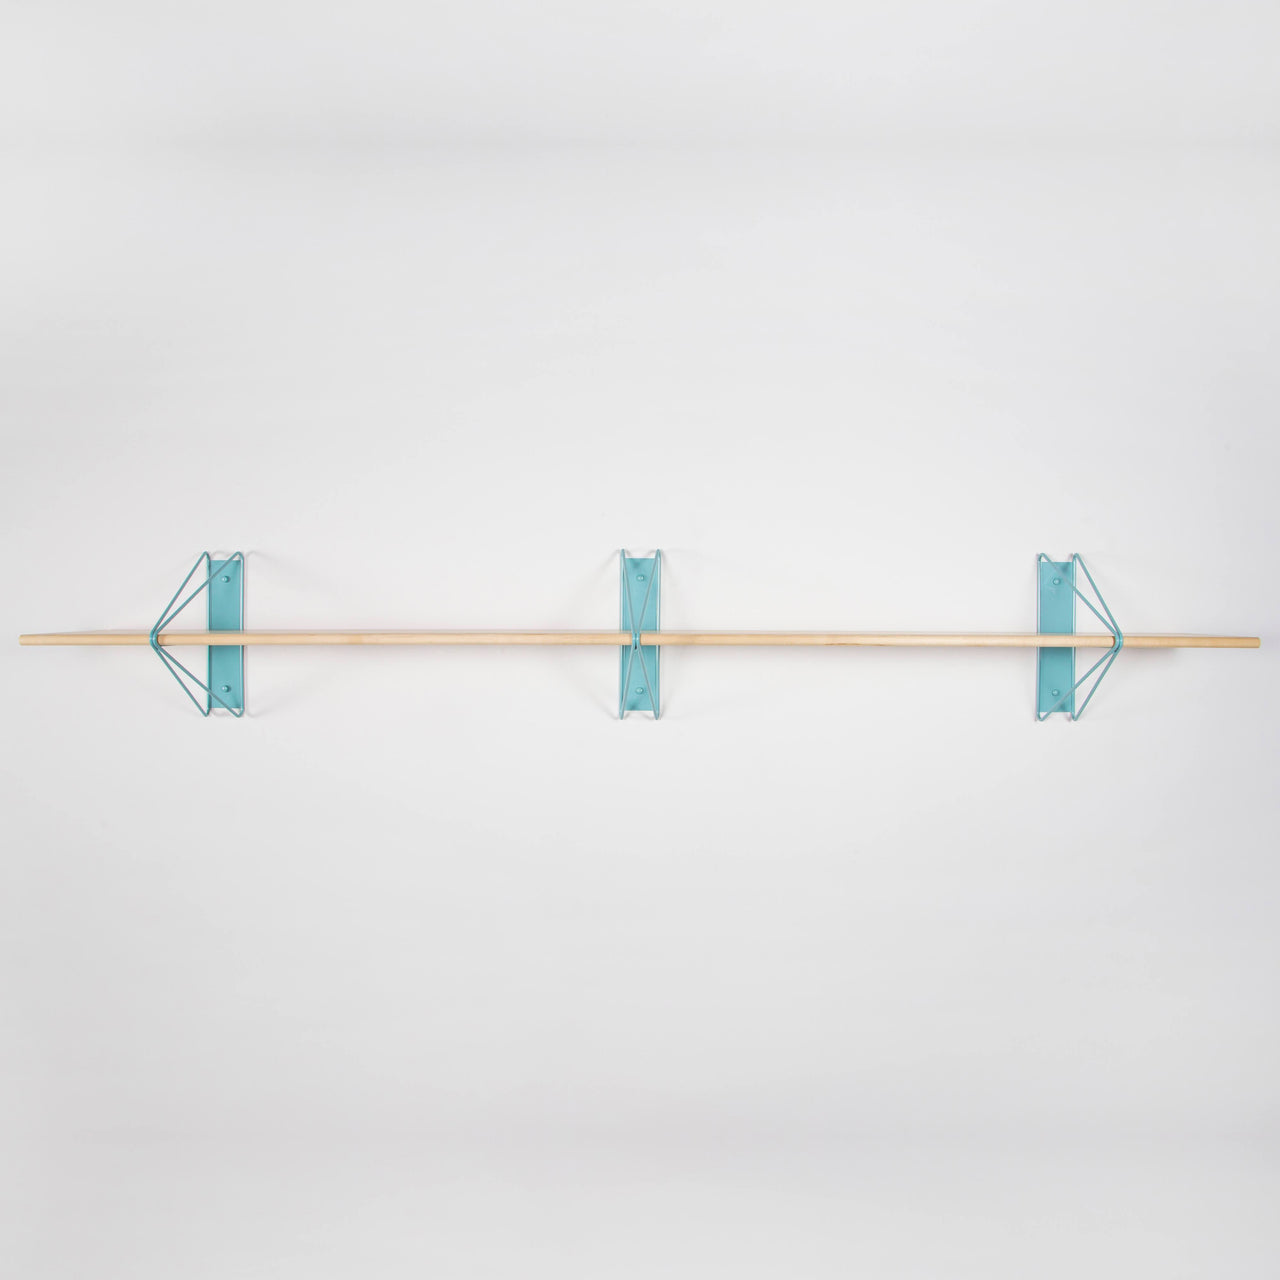 Strut Shelf + Shelving System: Light Blue + Natural Maple